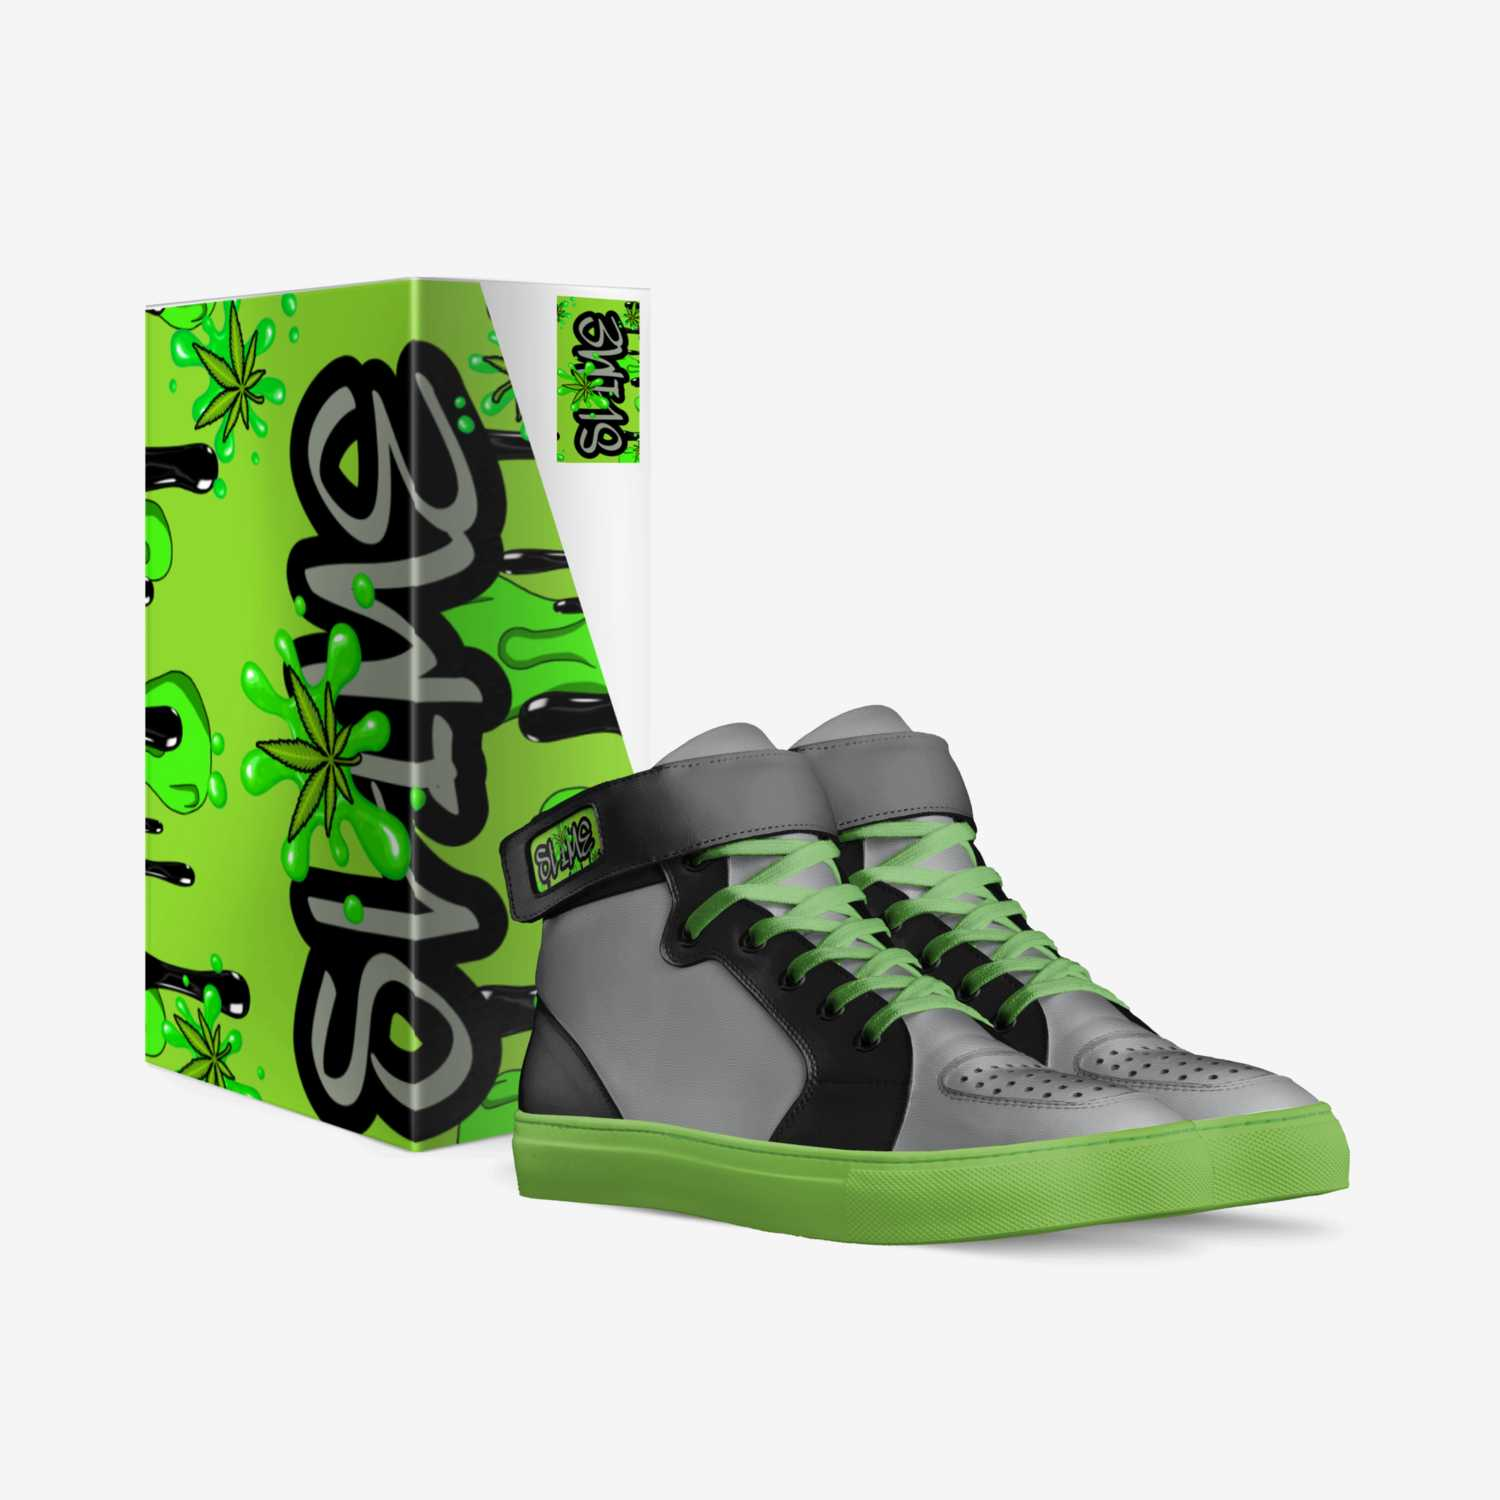 Slime custom made in Italy shoes by Candii Miller | Box view